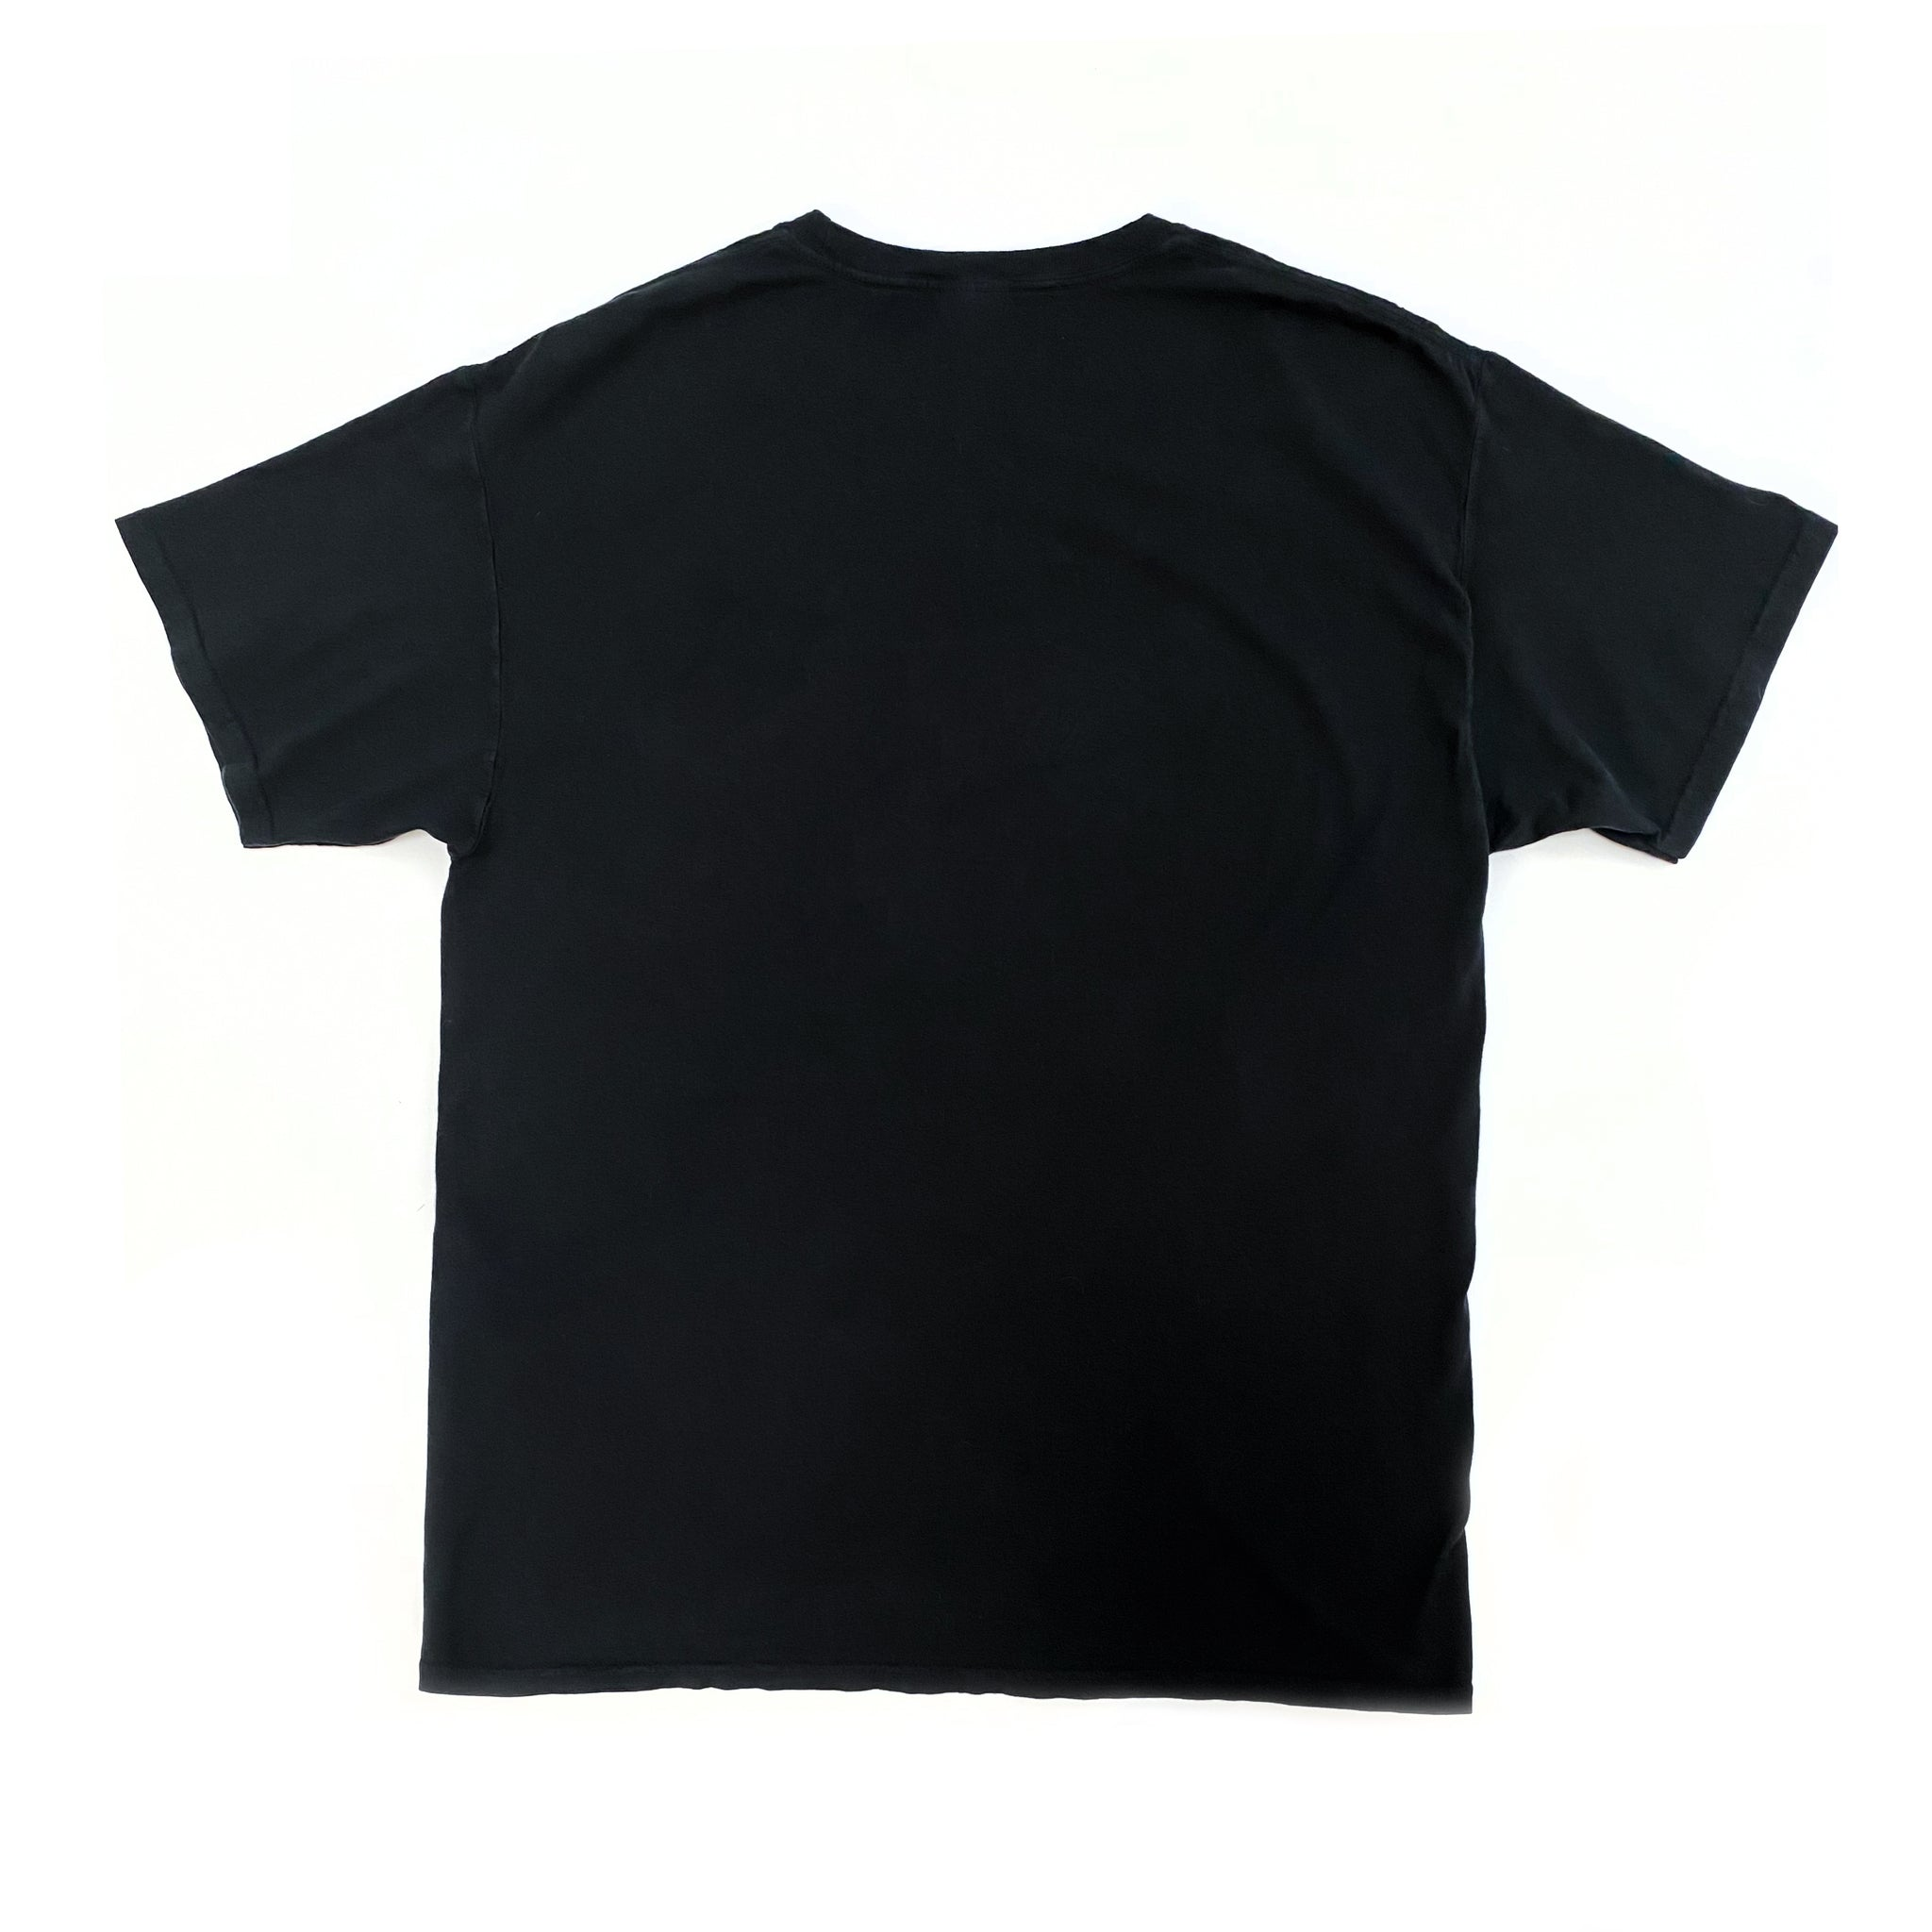 Back view of black short-sleeved t-shirt